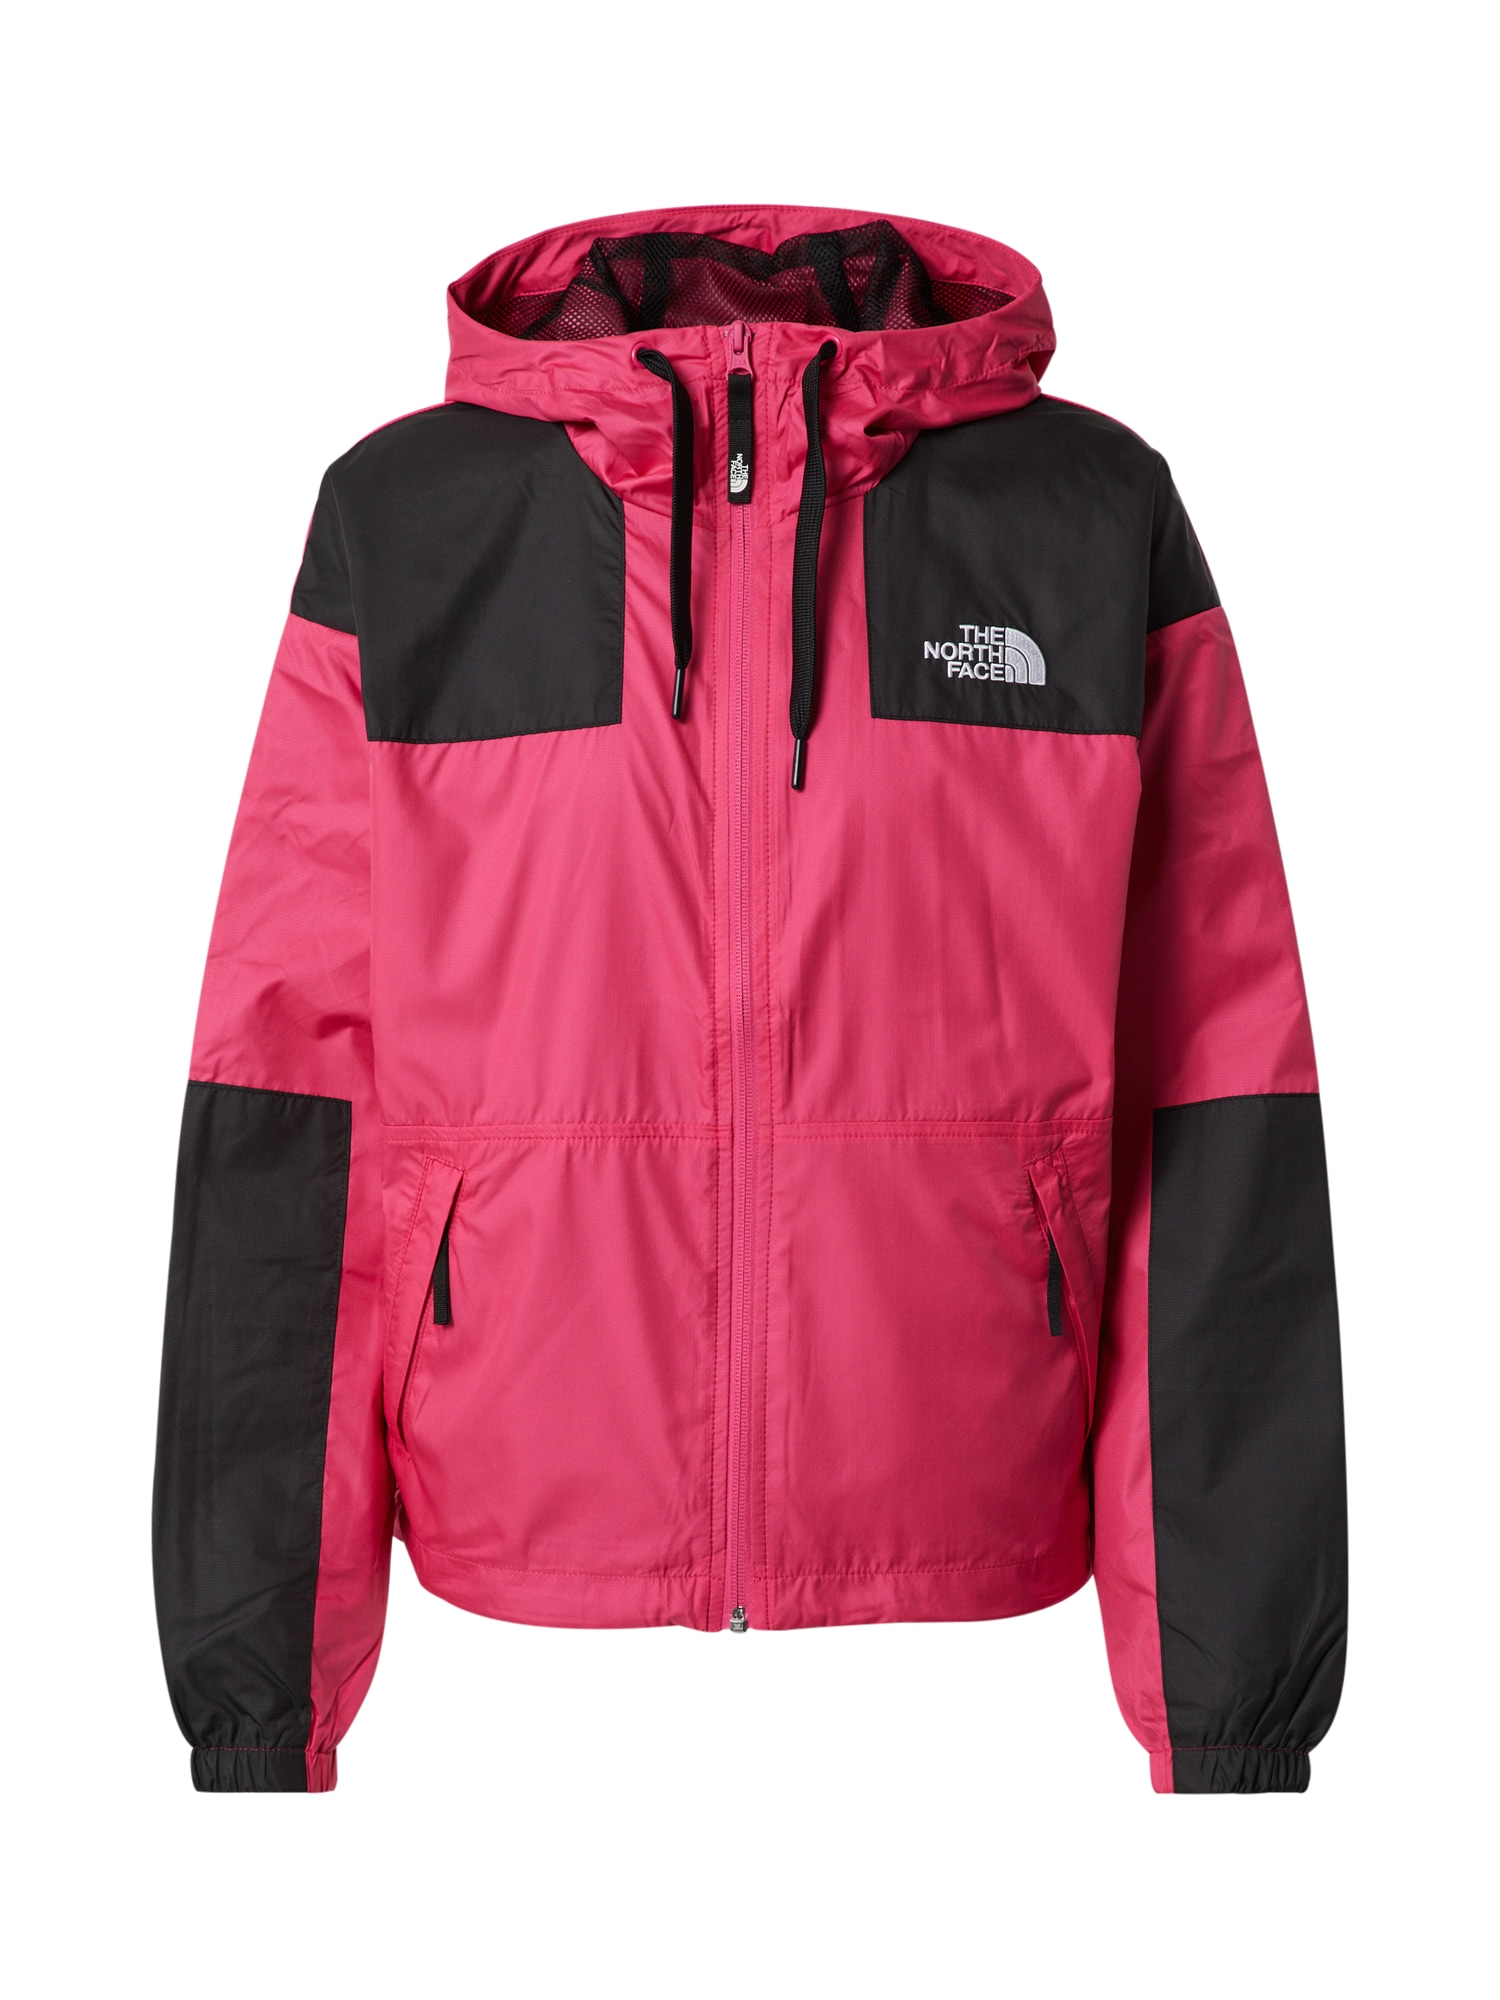 THE NORTH FACE Funkční bunda Sheru černá pink The North Face